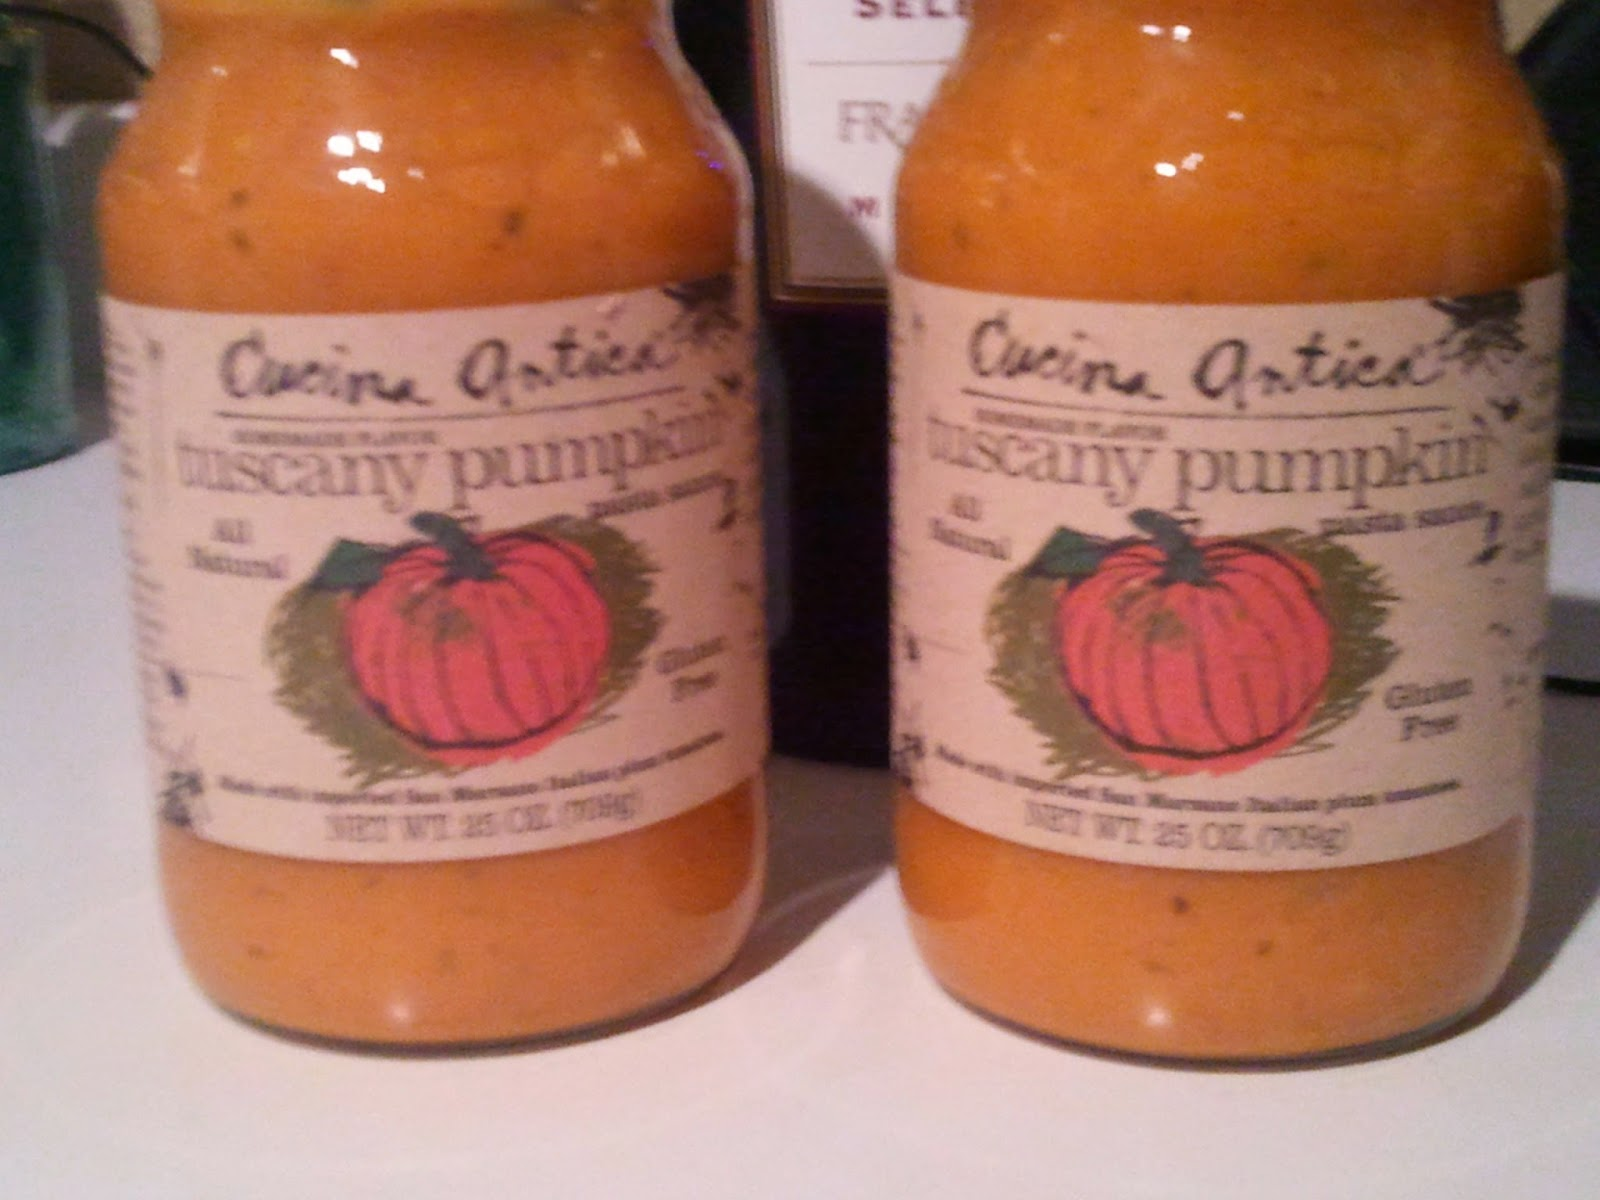 Cucina Antica Tomato Ketchup Perfect Sauce For The Holidays Cucina Antica Pumpkin Sauce